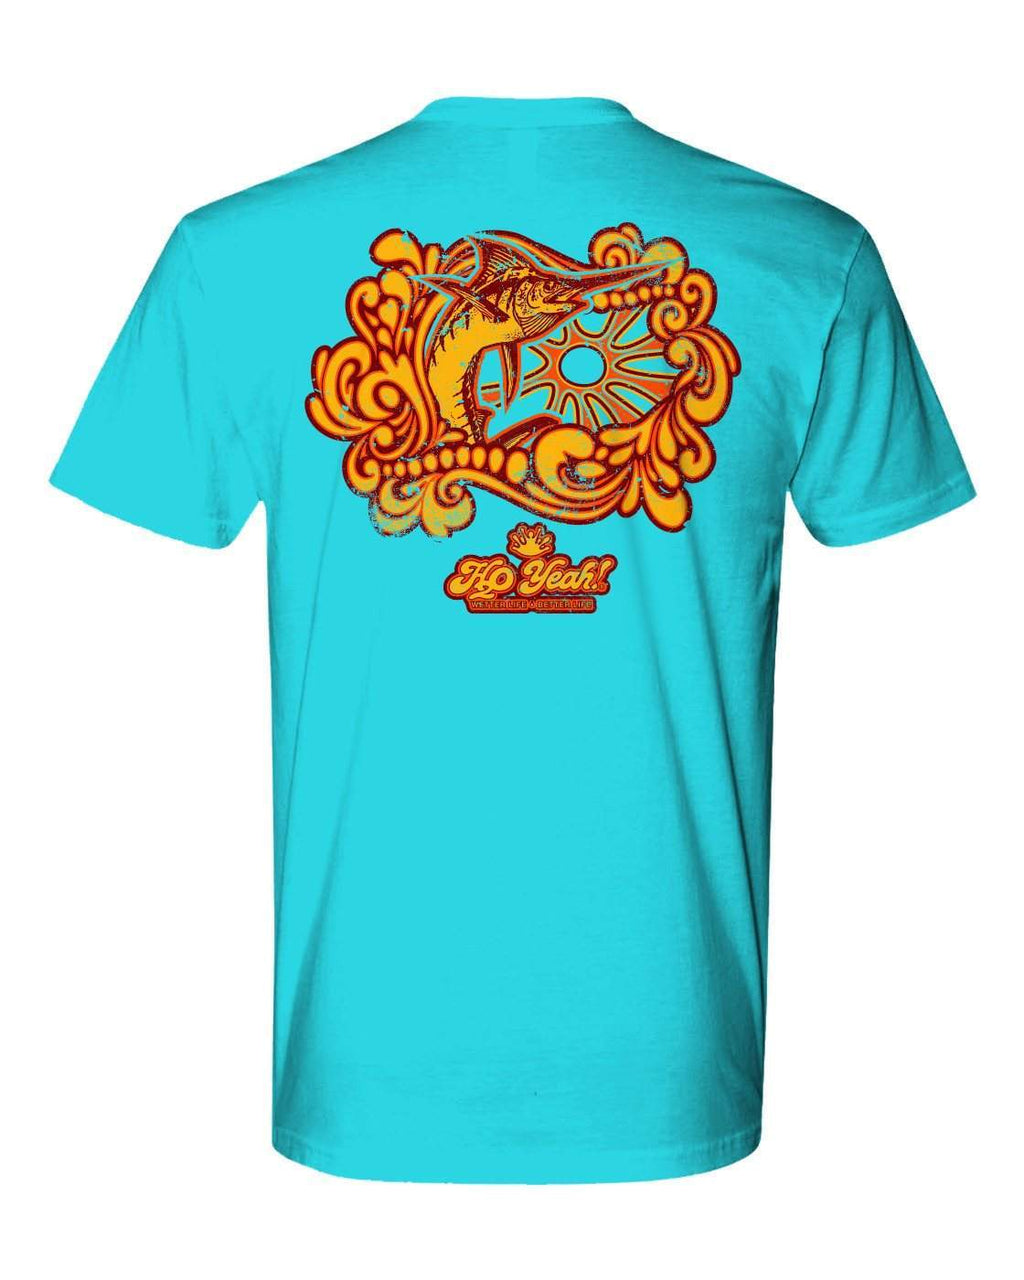 H2o Yeah! Sunsplash Marlin tee